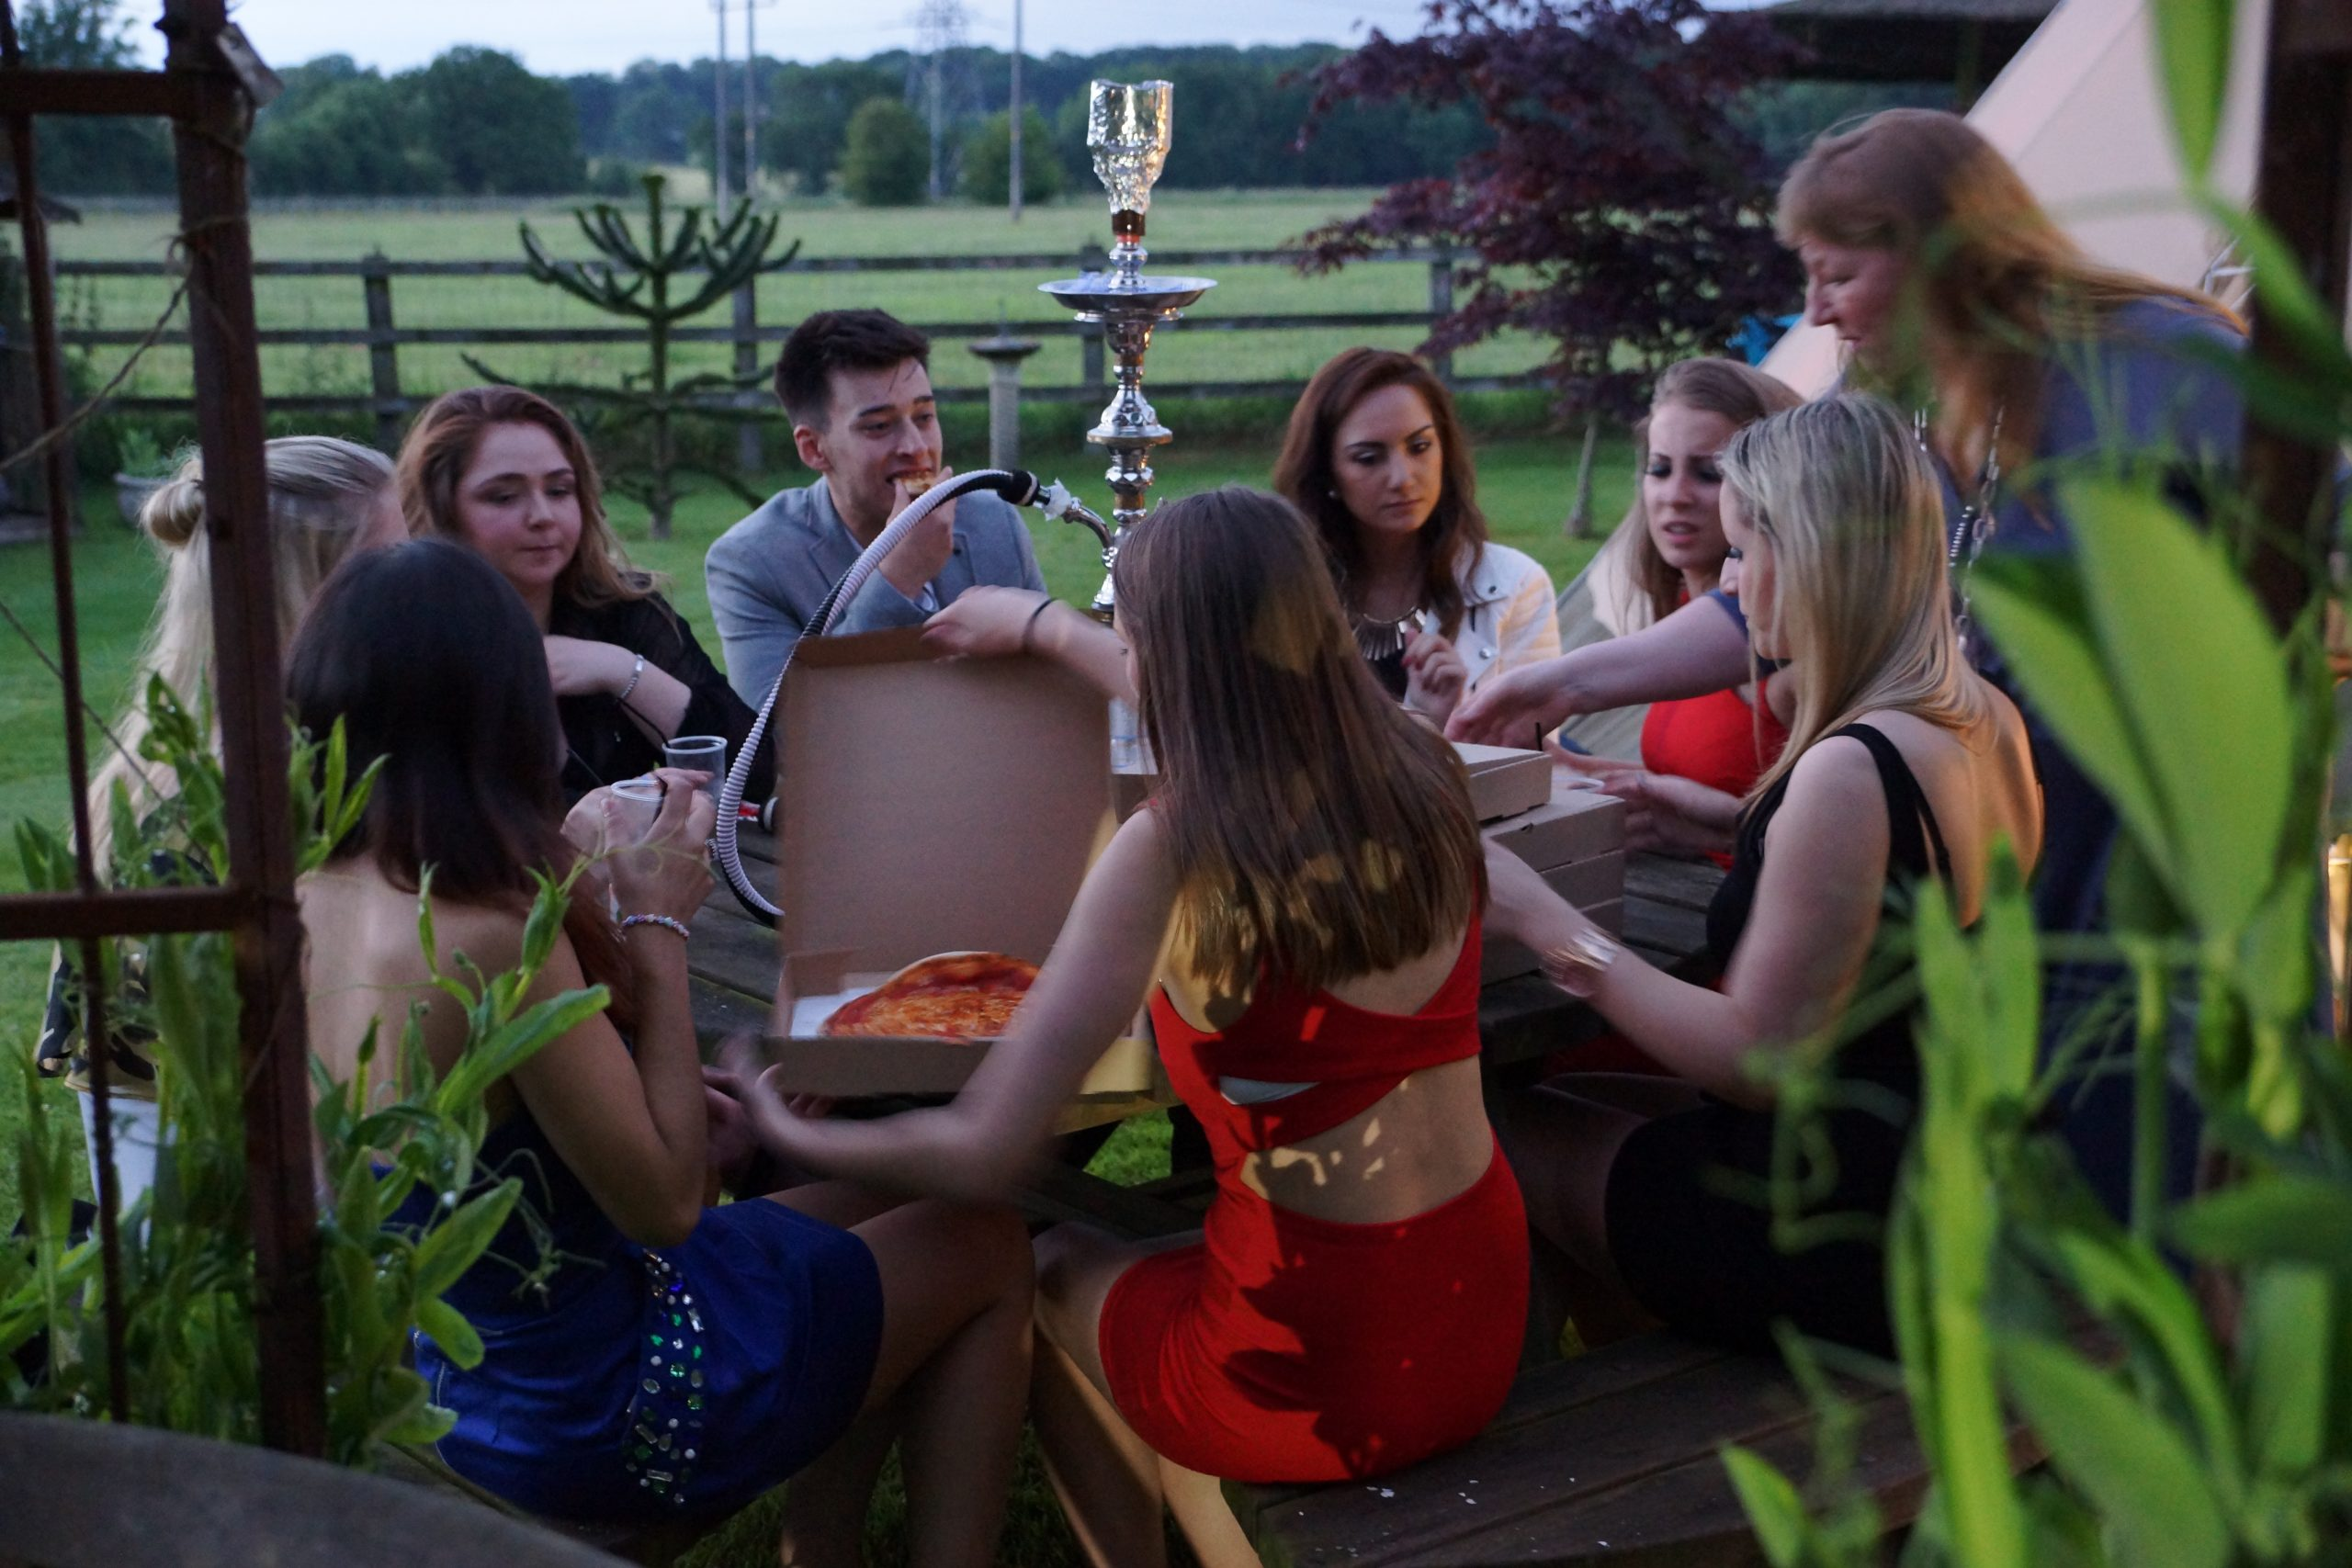 Luxury Shisha Hire Surrey Leatherhead Packages - Birthdays, House Parties, Corporate Events and Weddings